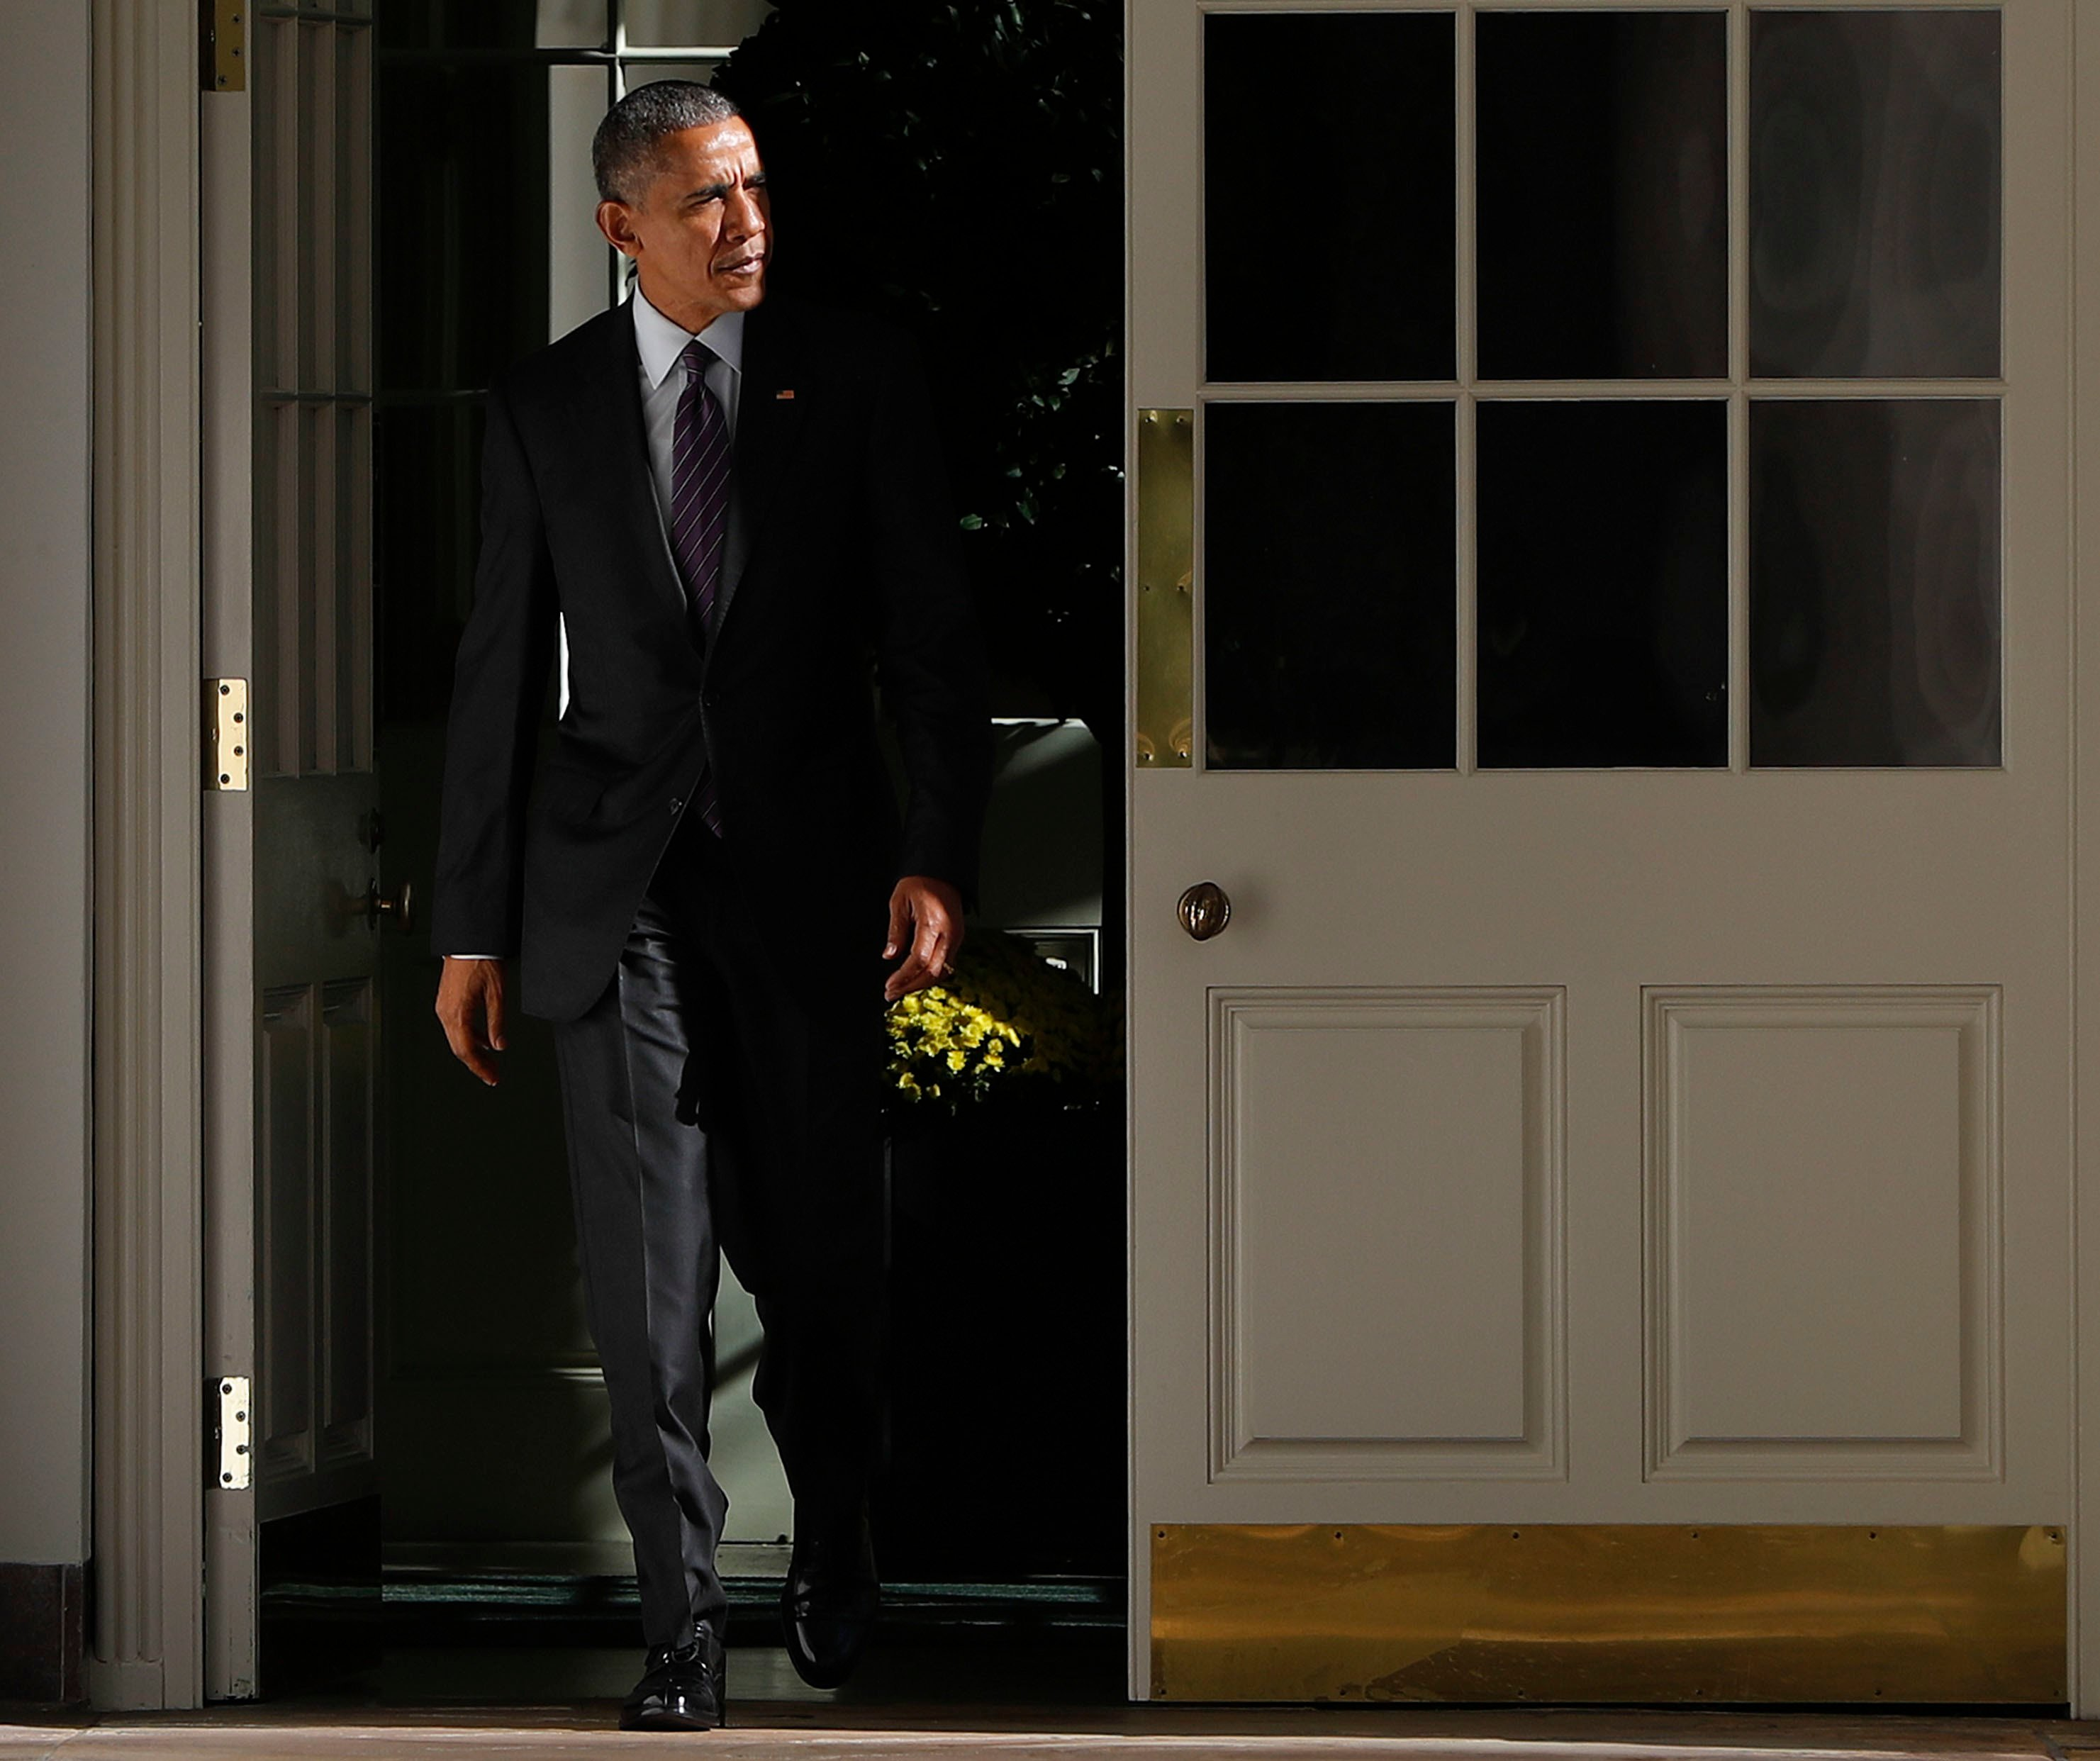 President Barack Obama walks out of the main residence of the White House and down the Colonnade and heads towards the Oval Office, Tuesday, Nov. 8, 2016, in Washington. (AP Photo/Pablo Martinez Monsivais)